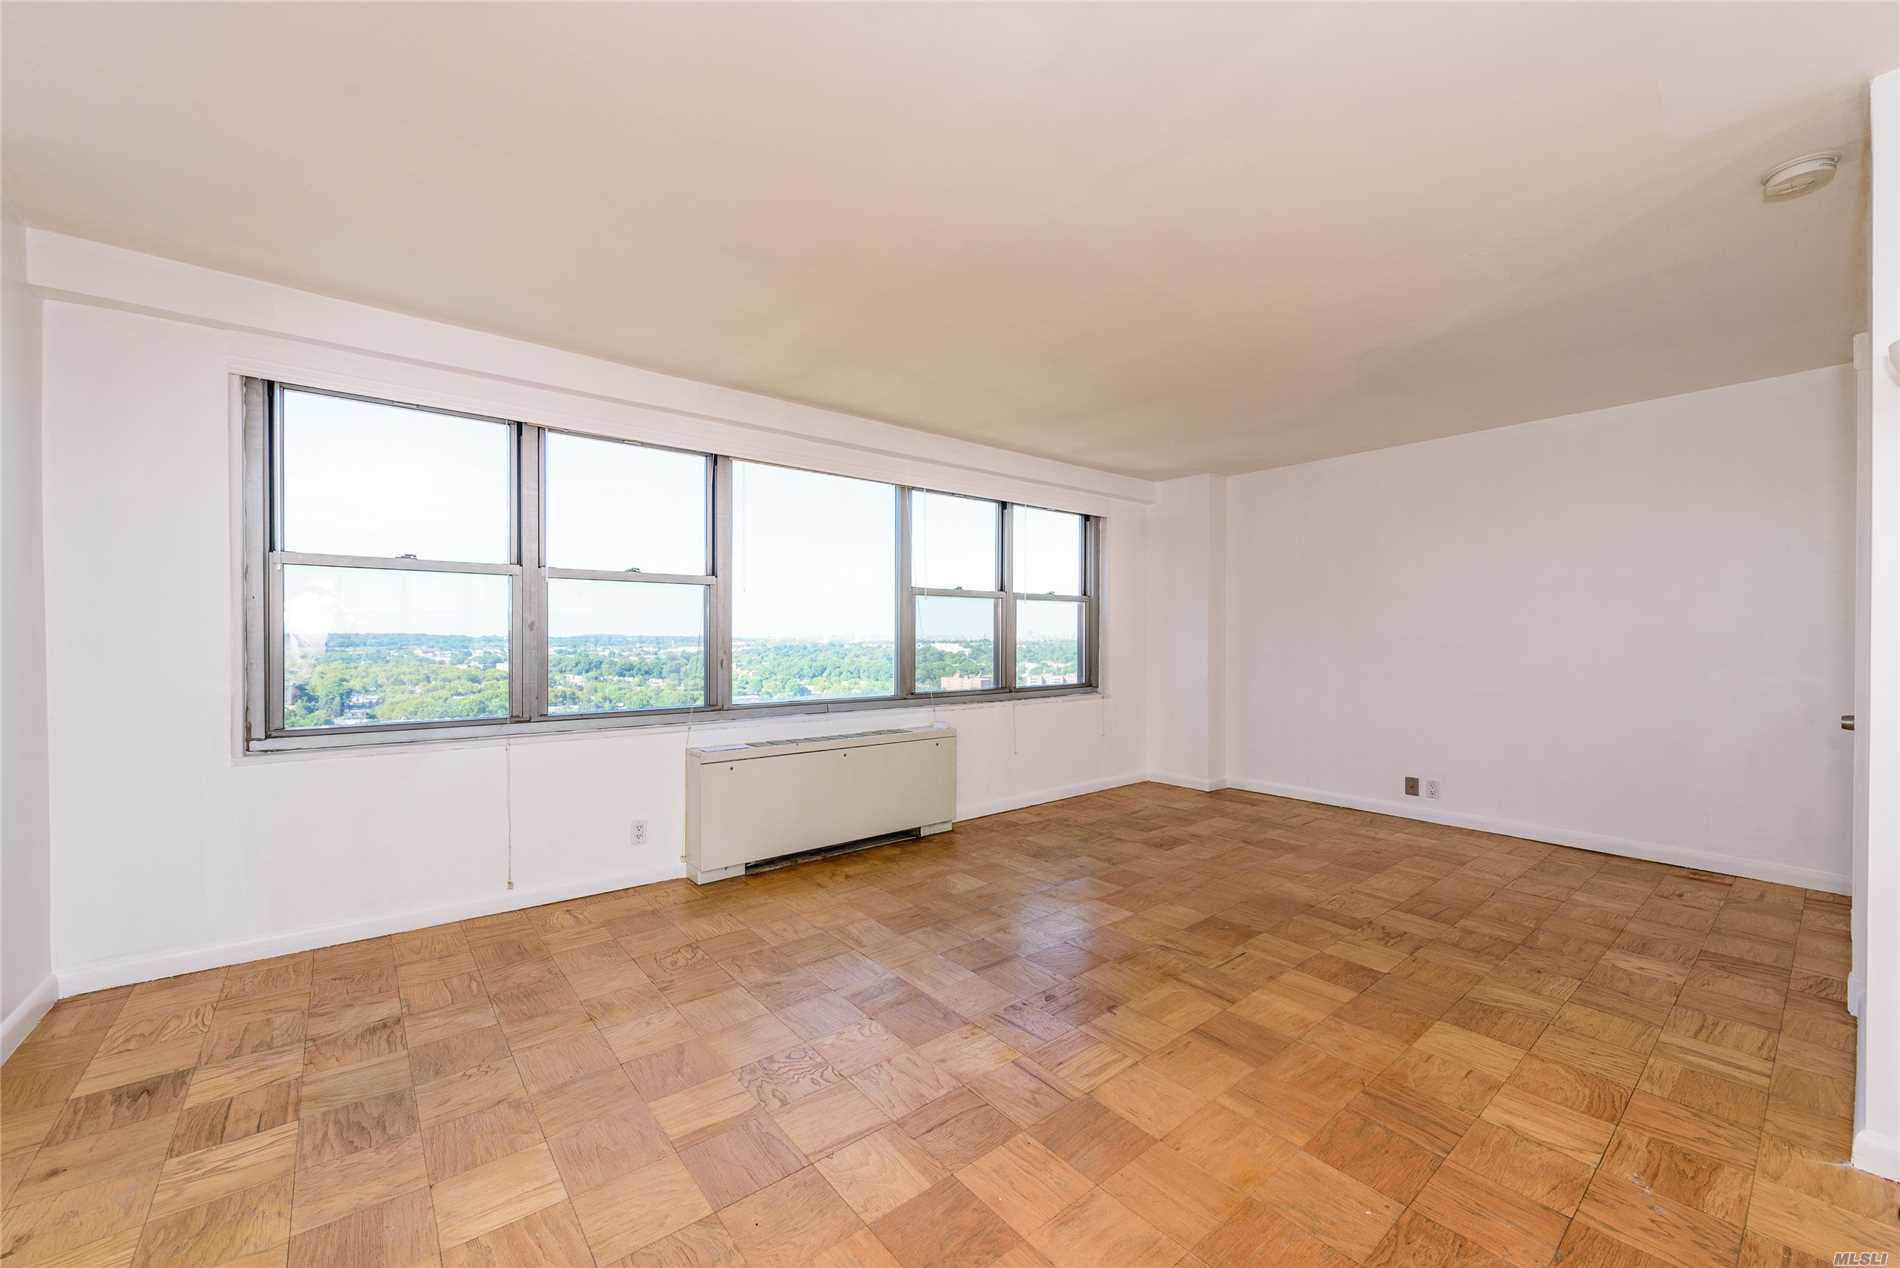 Spectacular Lower Manhattan And Forest Hills Gardens Views From This Alcove Studio. Gerard Towers Offers A 24 Hr Doorman, Heated Seasonal Pool, Fitness And Immediate Valet Parking. Jjust Around The Corner From Trendy Austin St. Shops Restaurants And More! Cat Friendly Building!